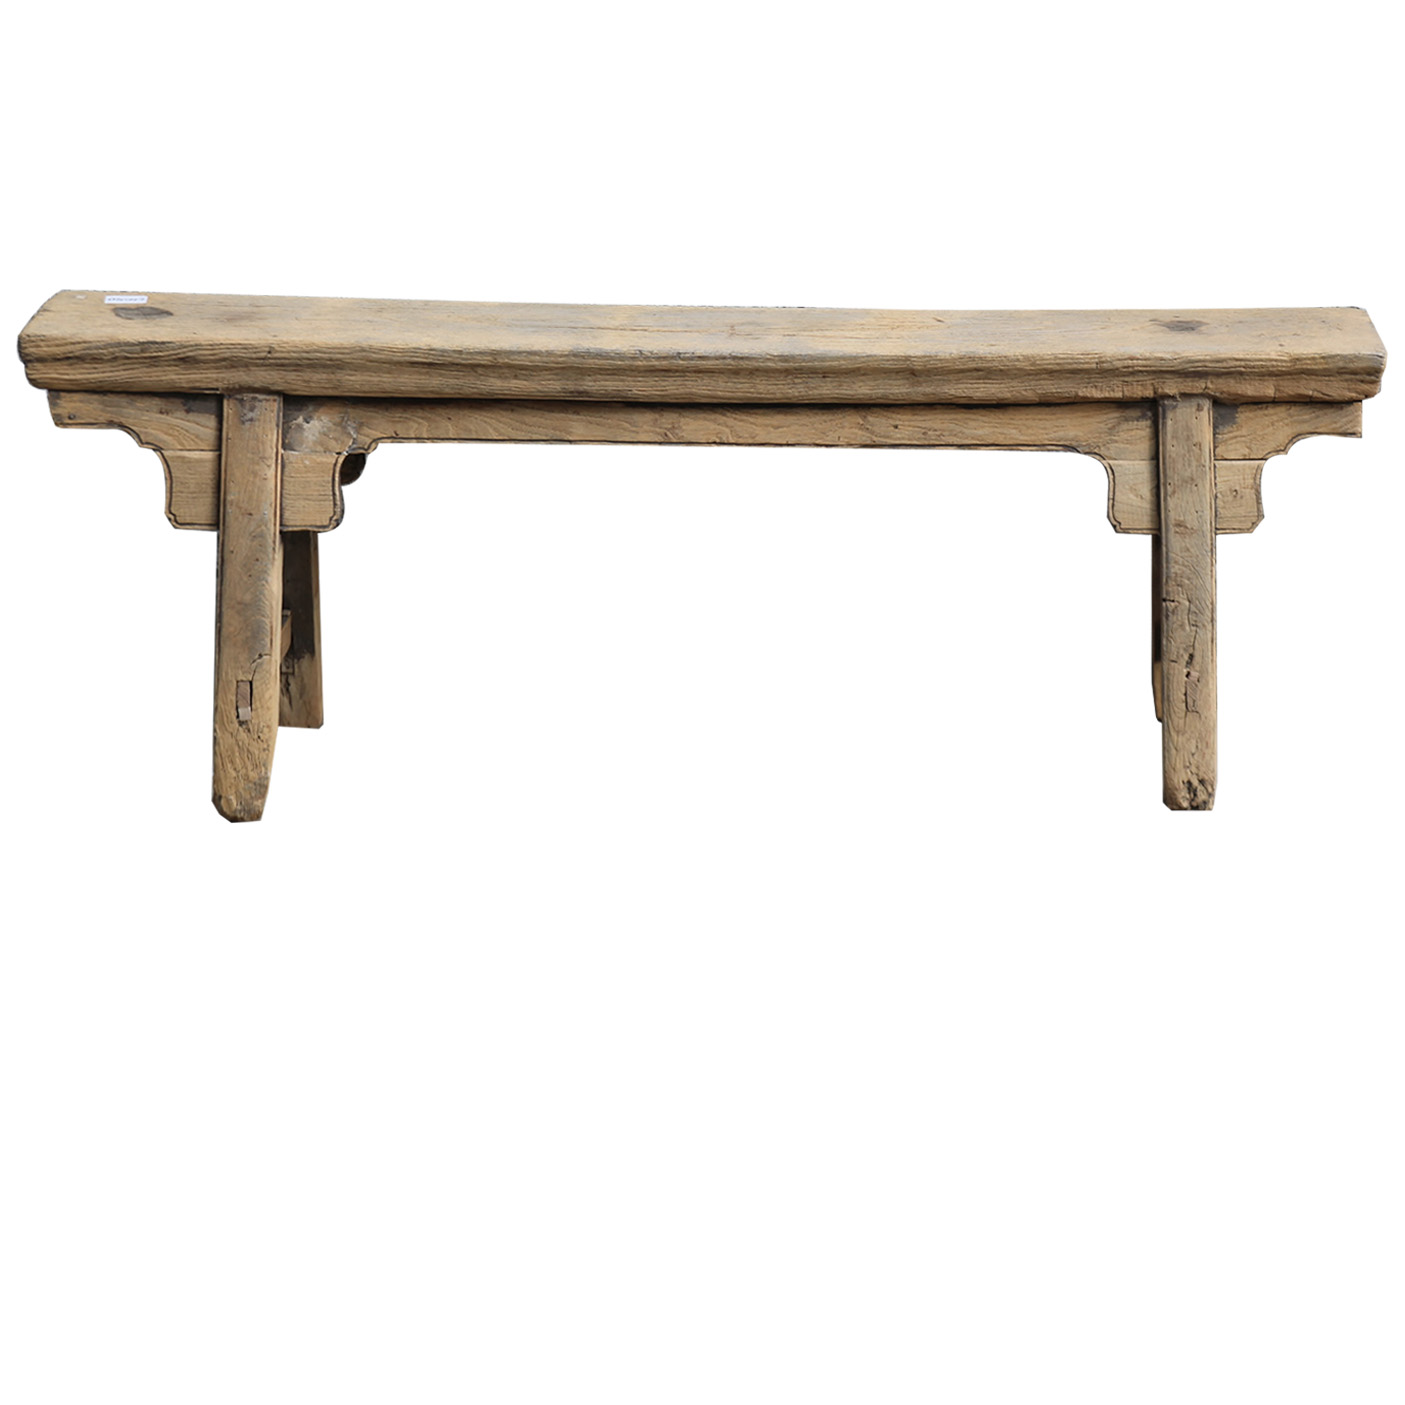 Recycle Furniture Chinese Antique Recycle Wood Bench Furniture Antique View Antique Inlaid Wood Furniture Sinocurio Product Details From Beijing Sinocurio Furniture